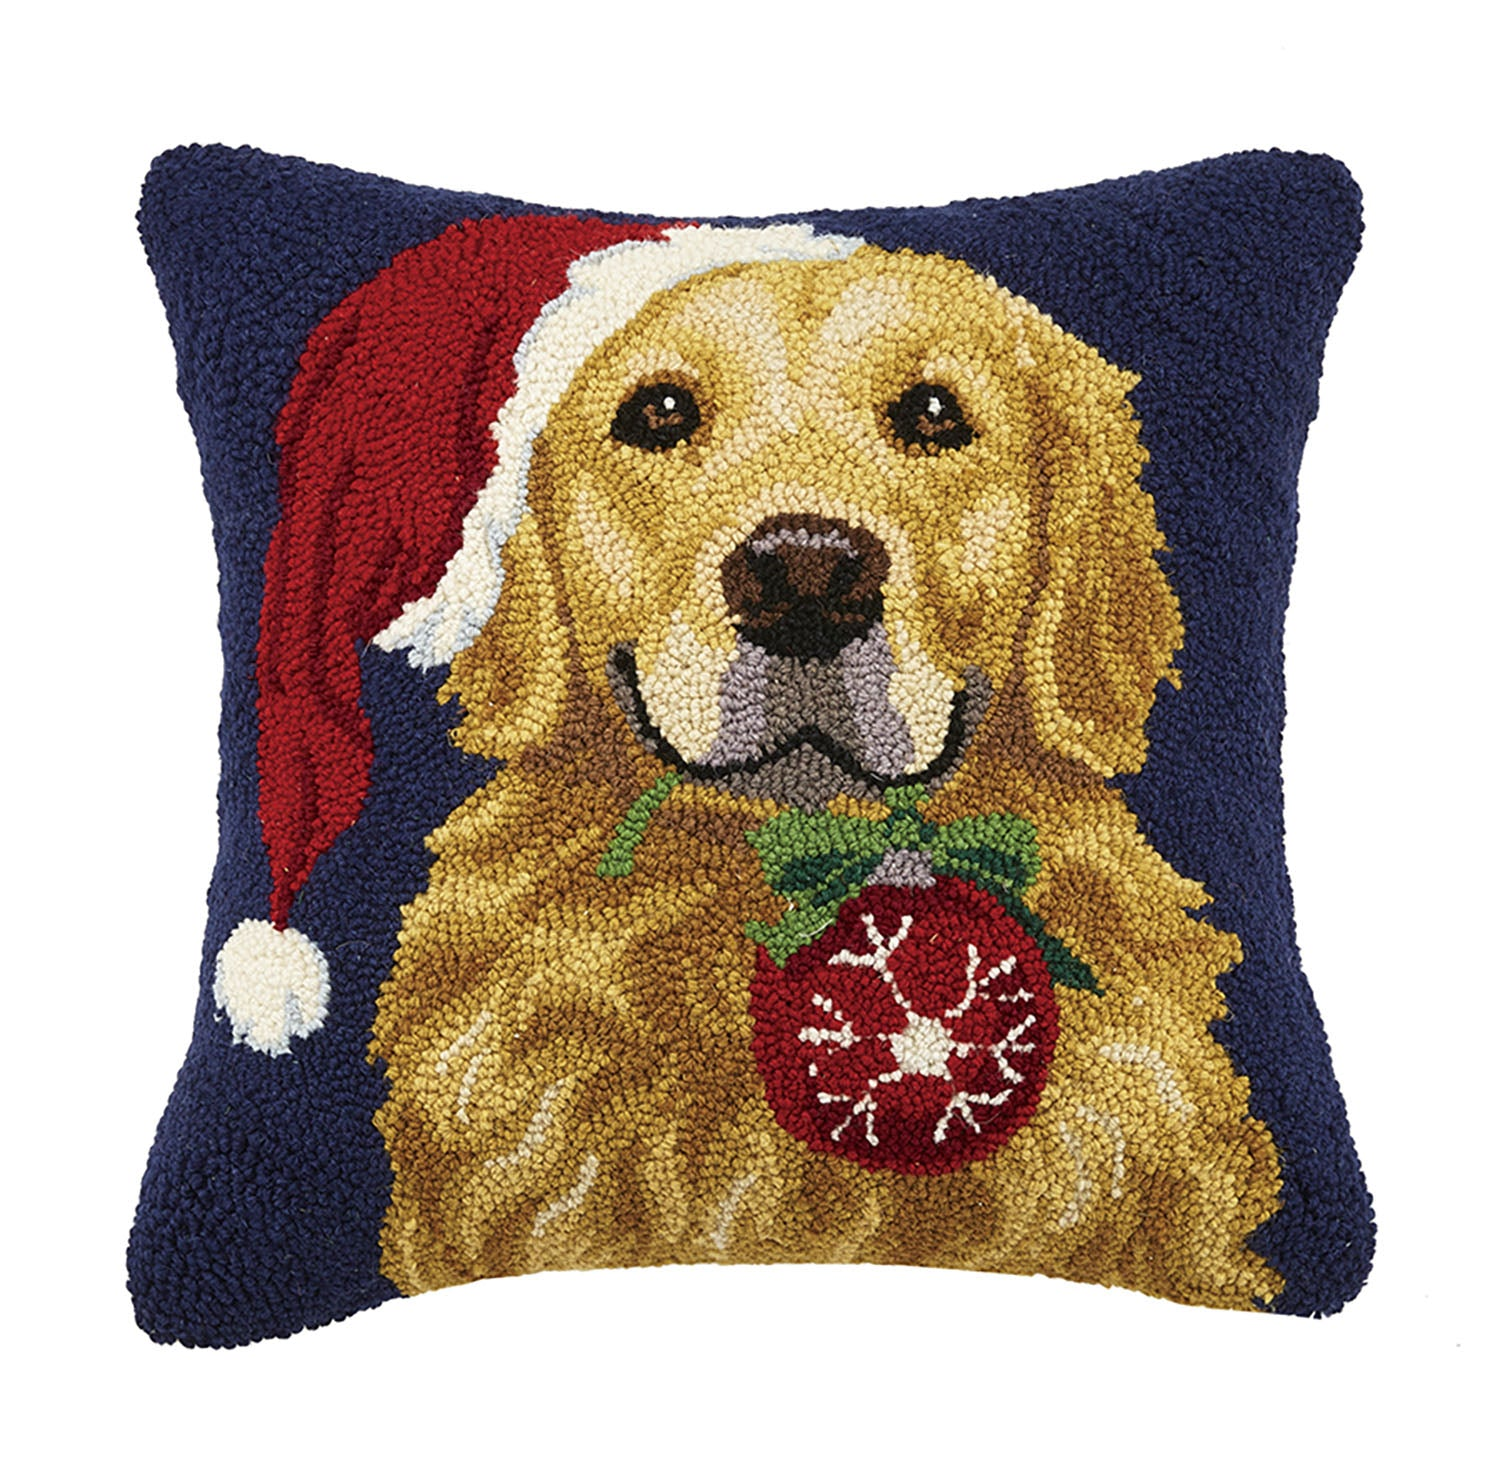 Golden Retriever Plays Santa Hooked Pillow